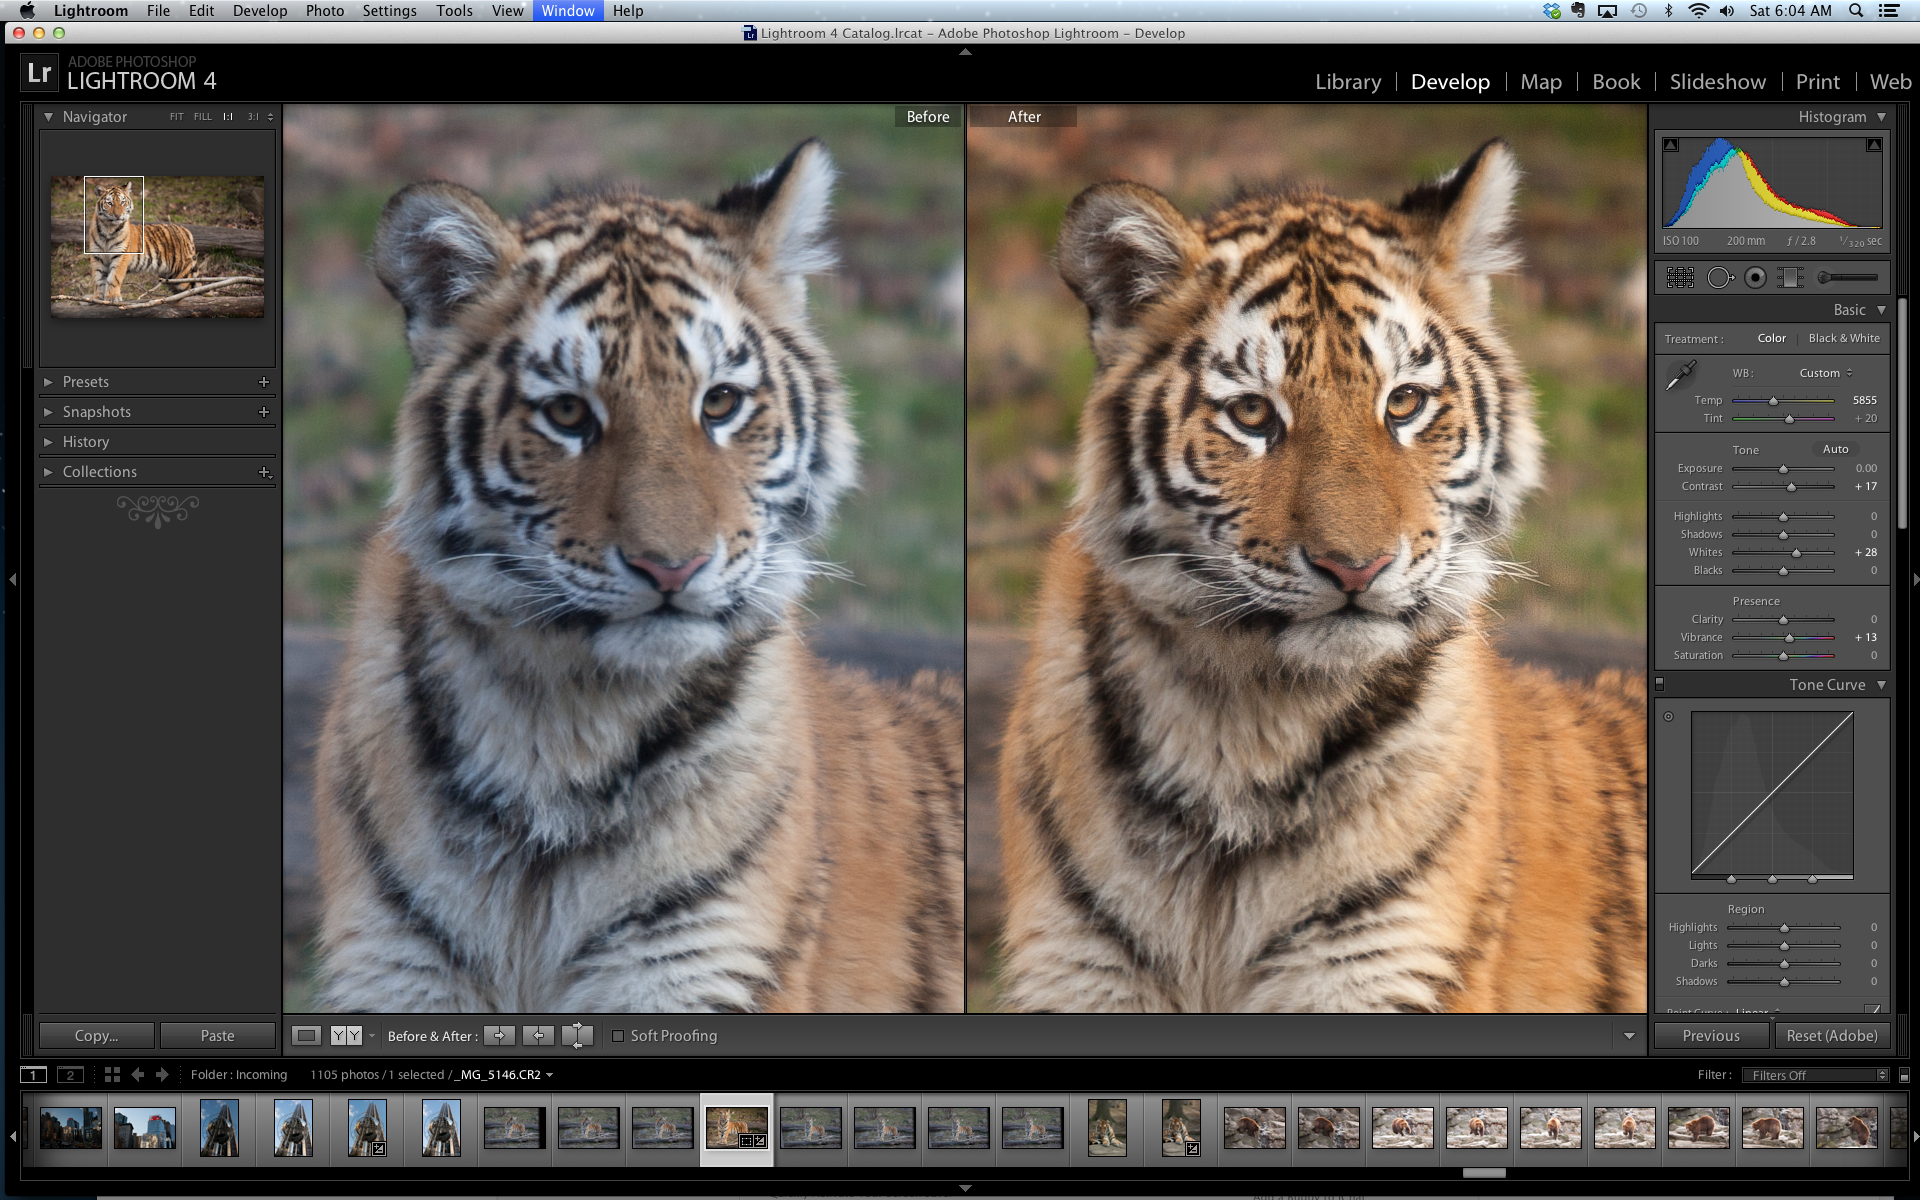 A closer look at the before and after files in Lightroom 4.